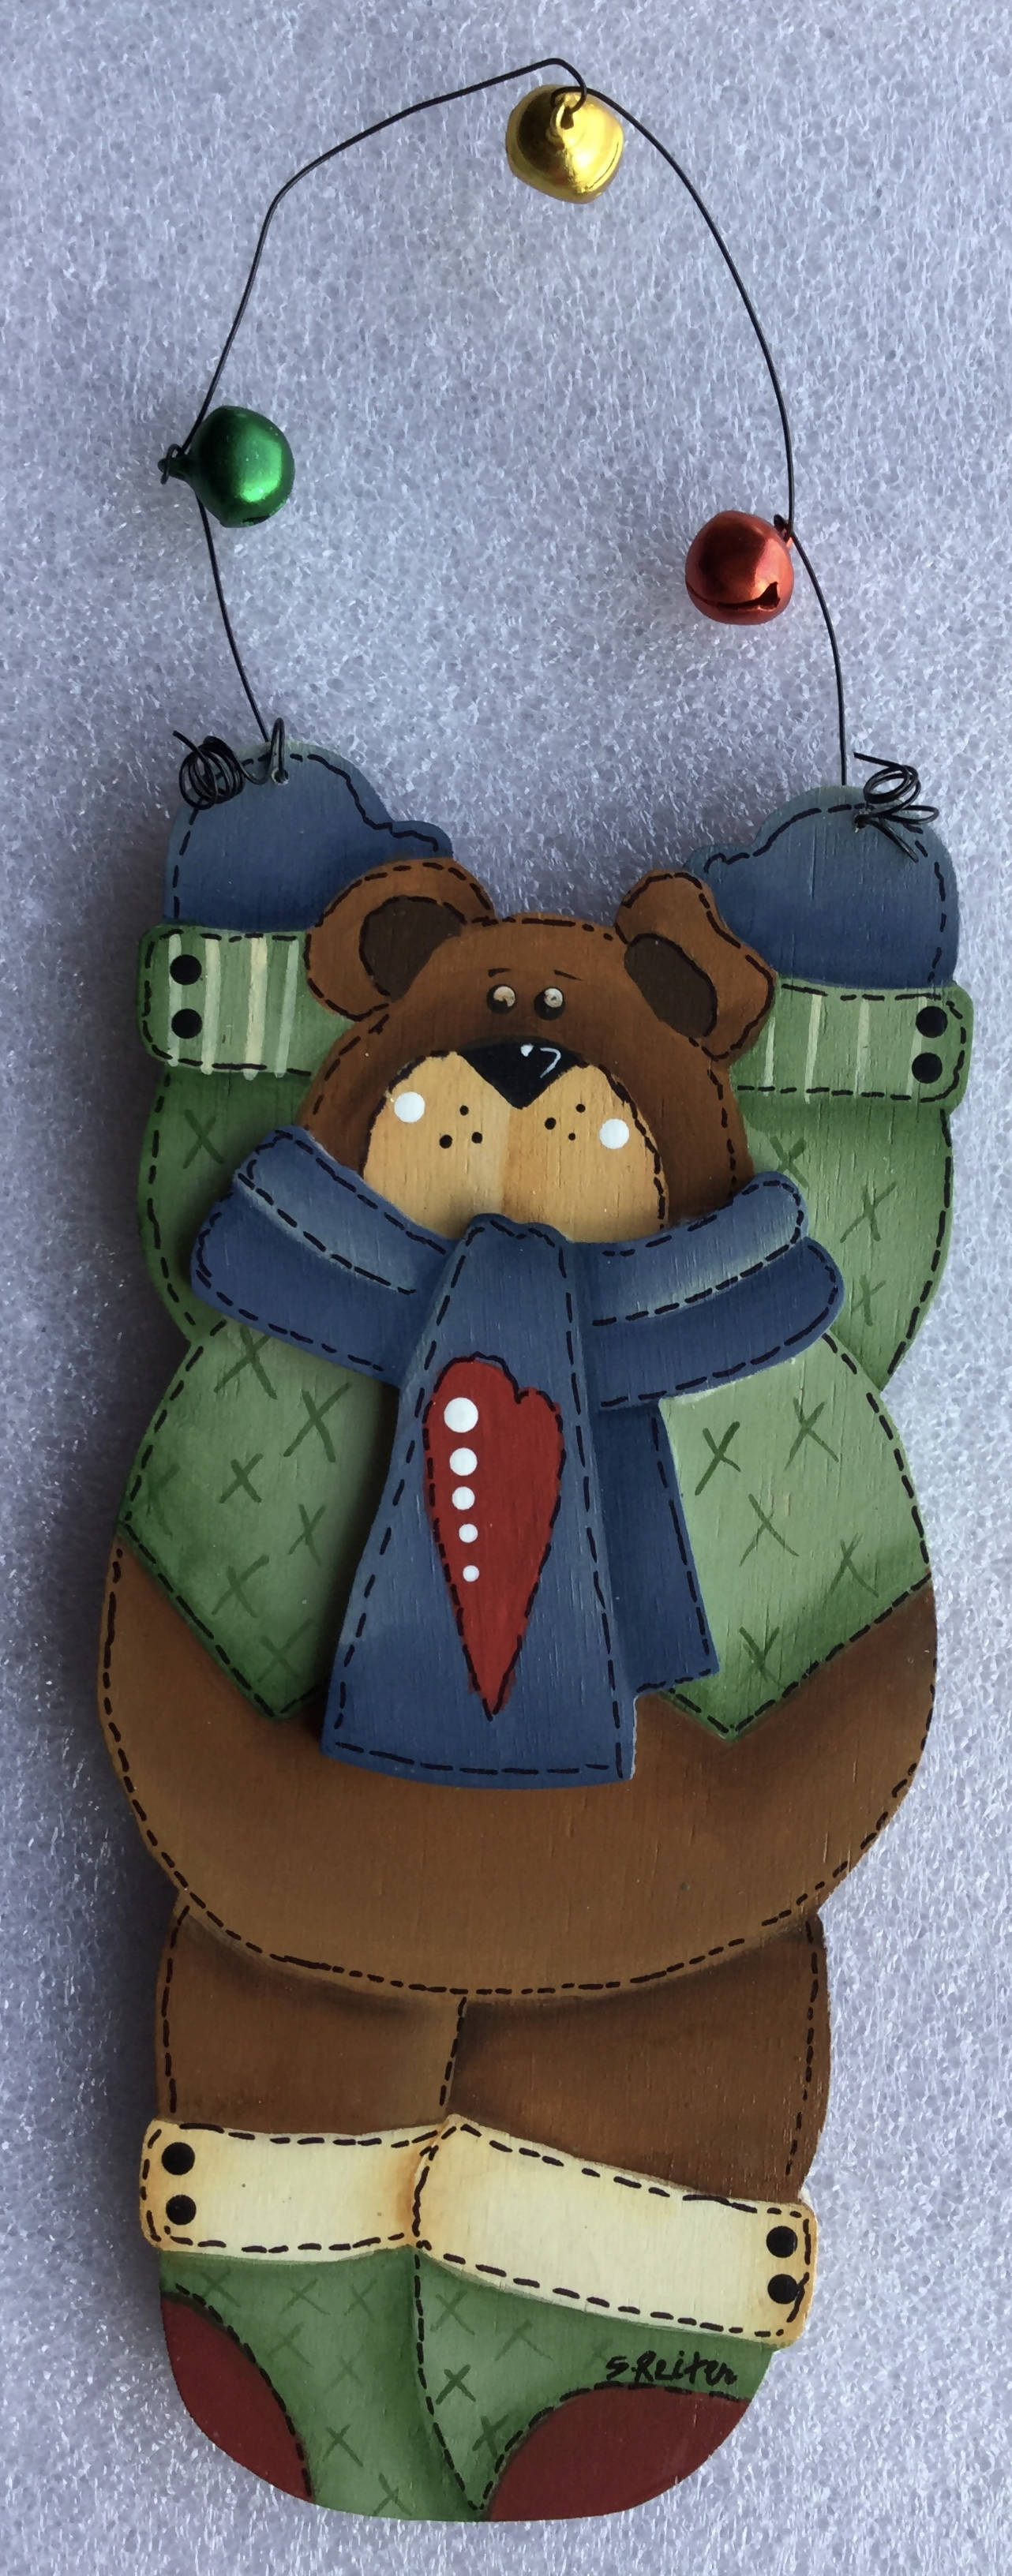 Wooden Ornament Cut out and Hand Painted as a Christmas Bear